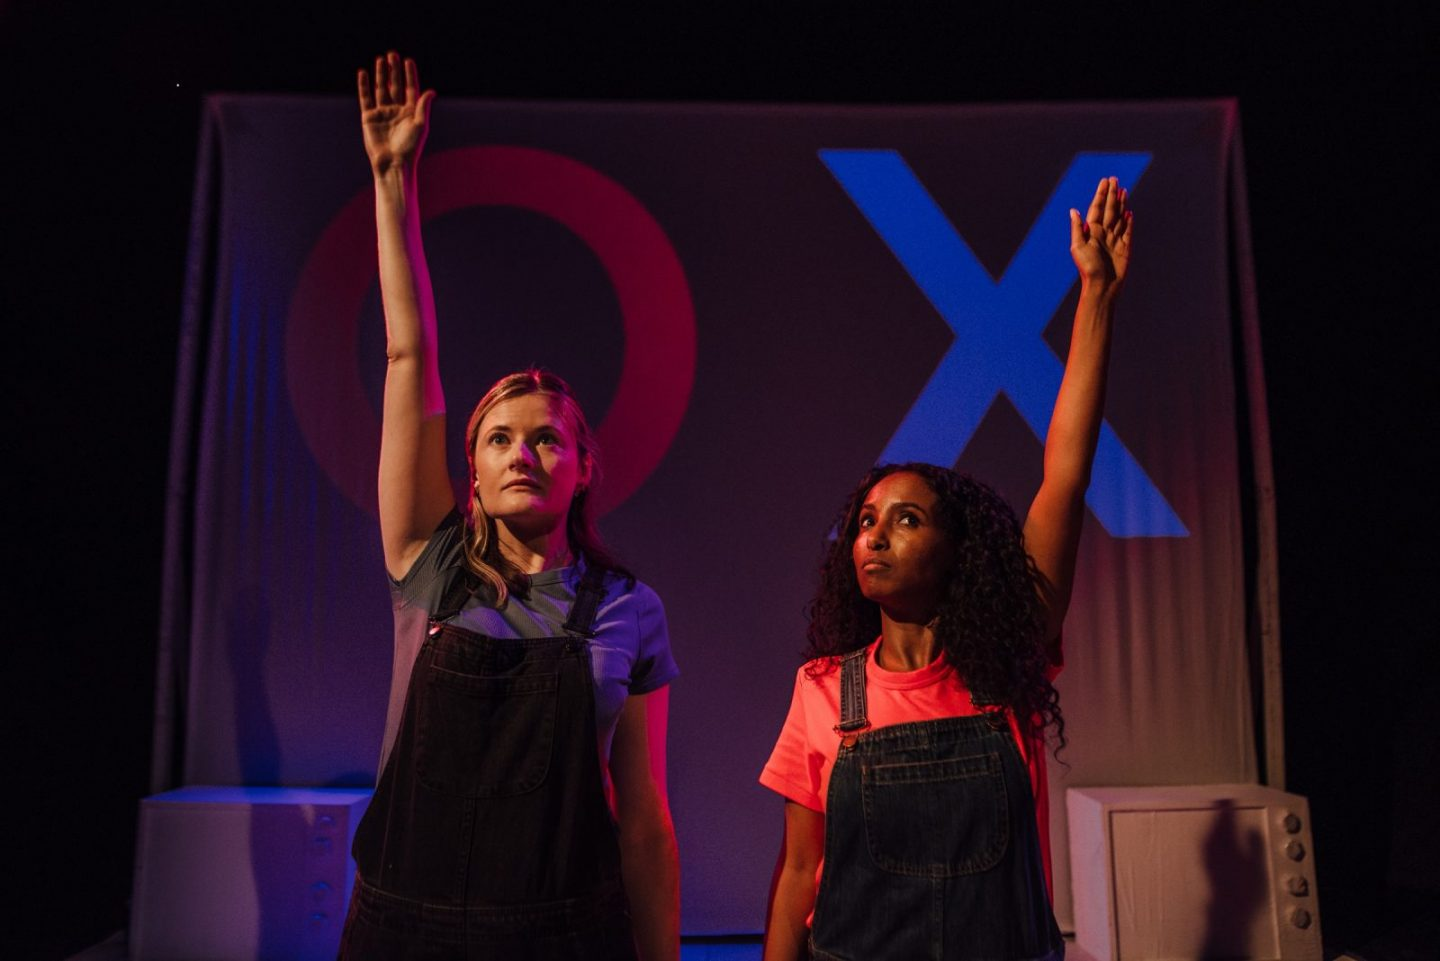 On stage photo of two women stood up with one hand raised in the air: one woman looks confident and the other more uncertain